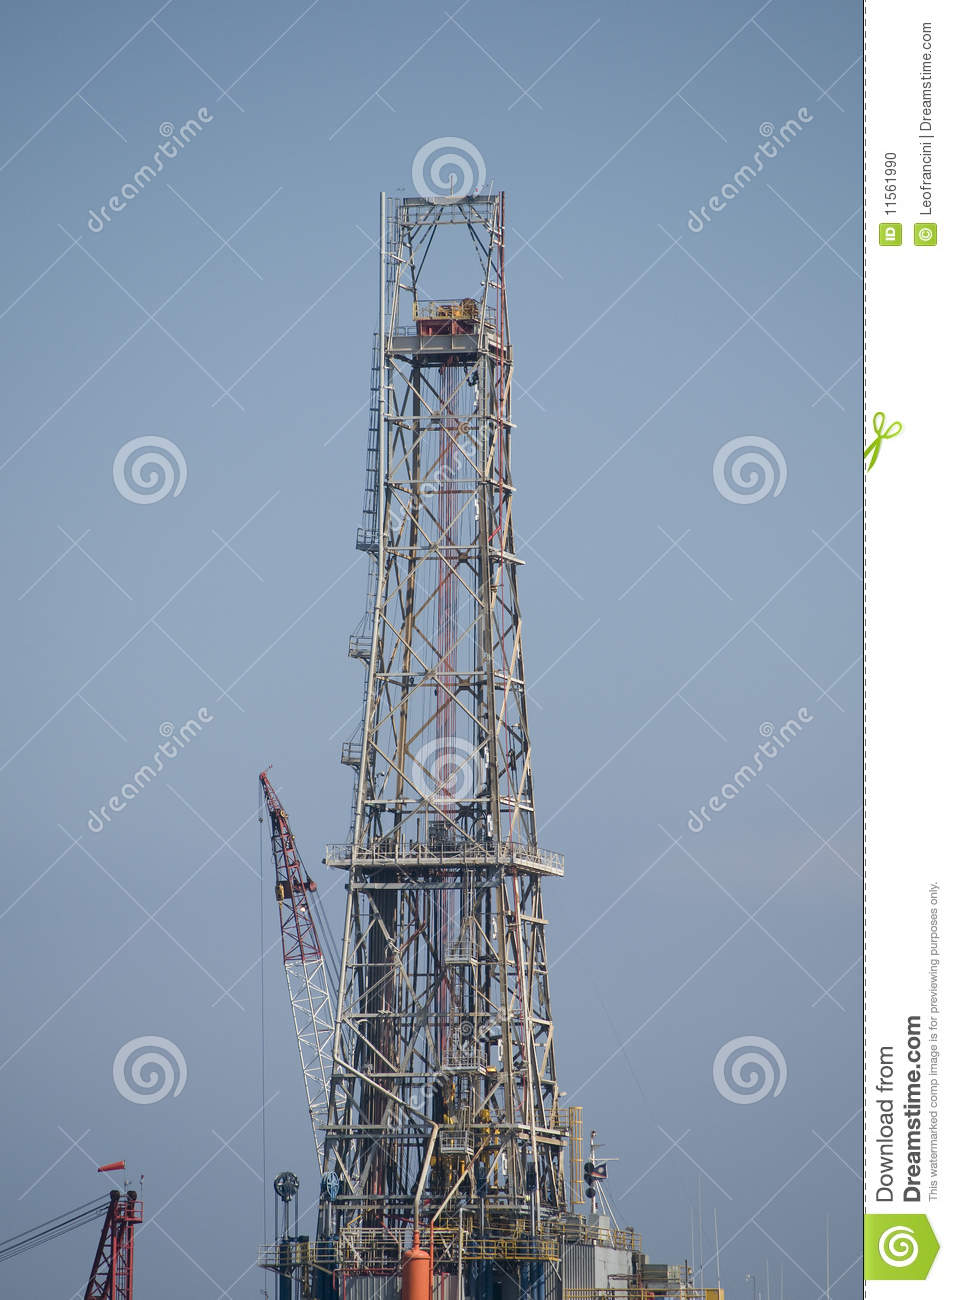 Tower of a drilling rig